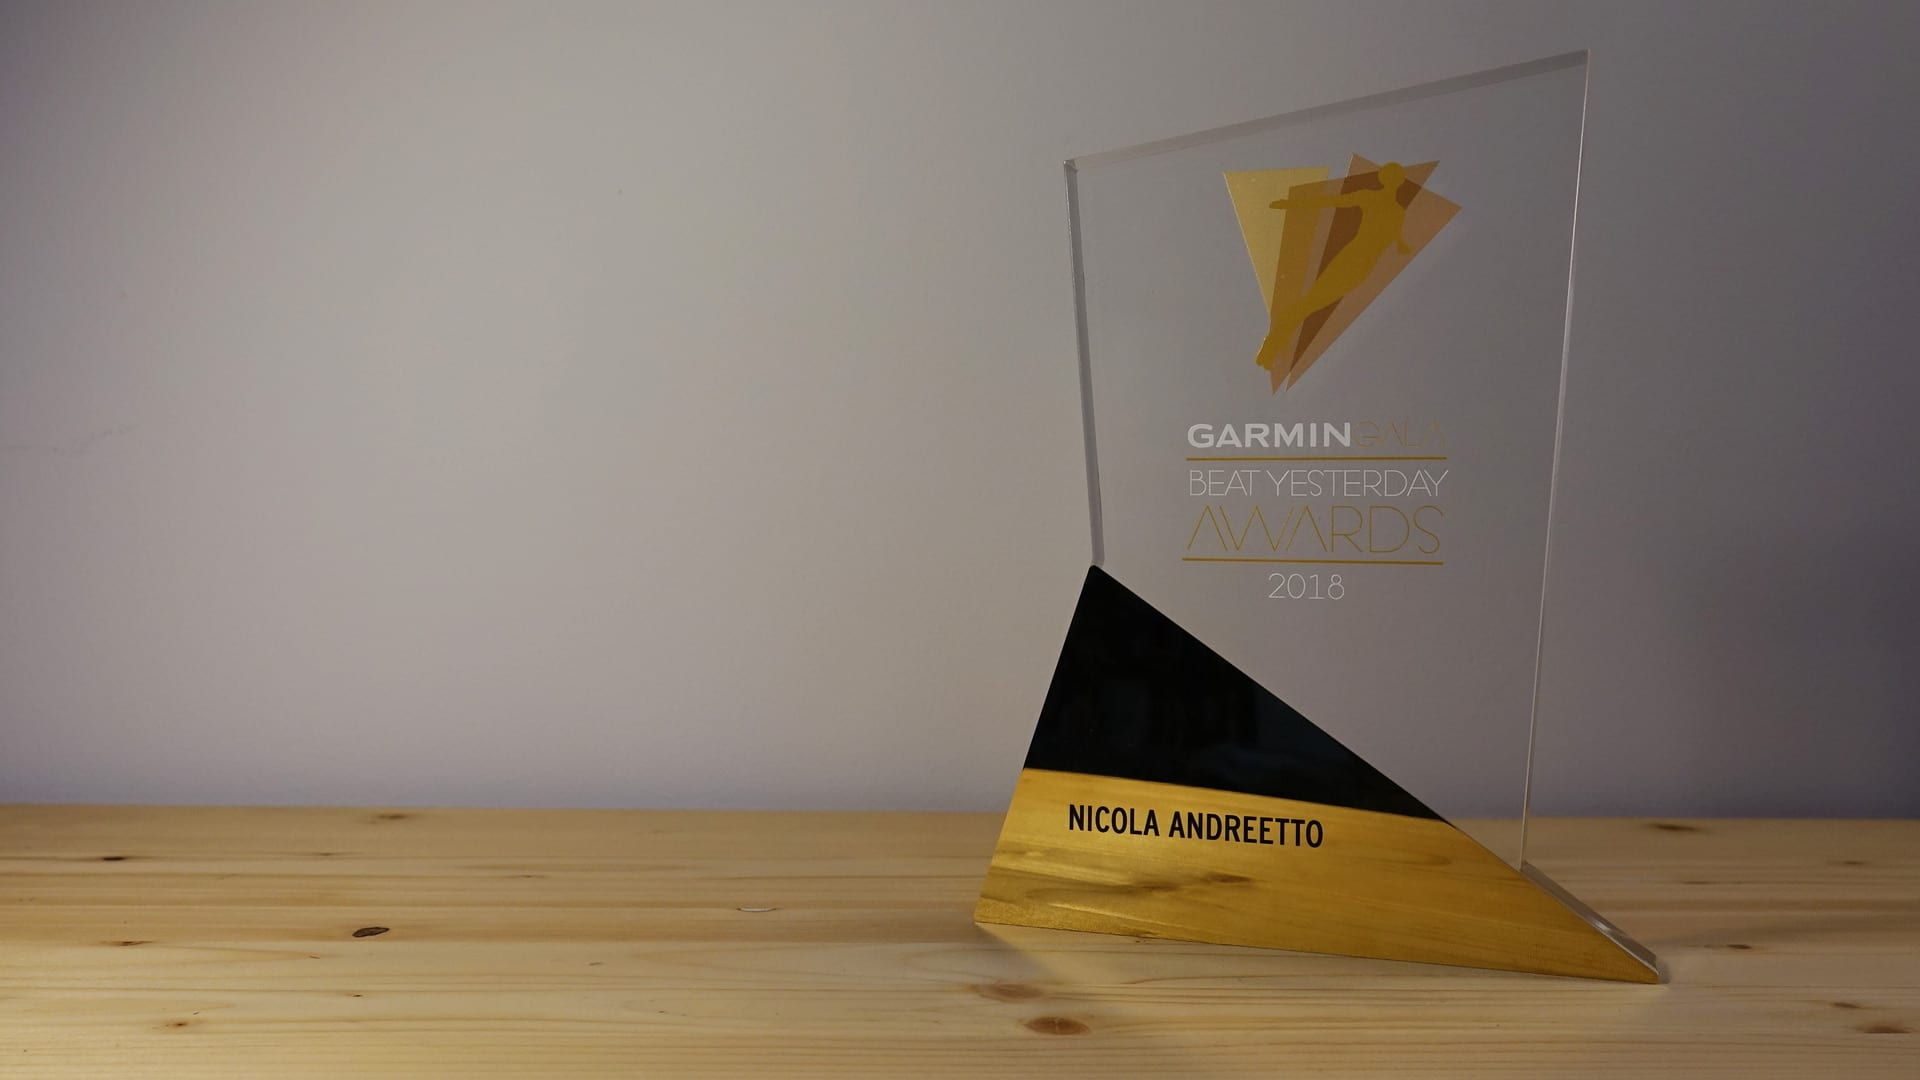 garmin beat yesterday award 2018 motoreetto categoria blog social